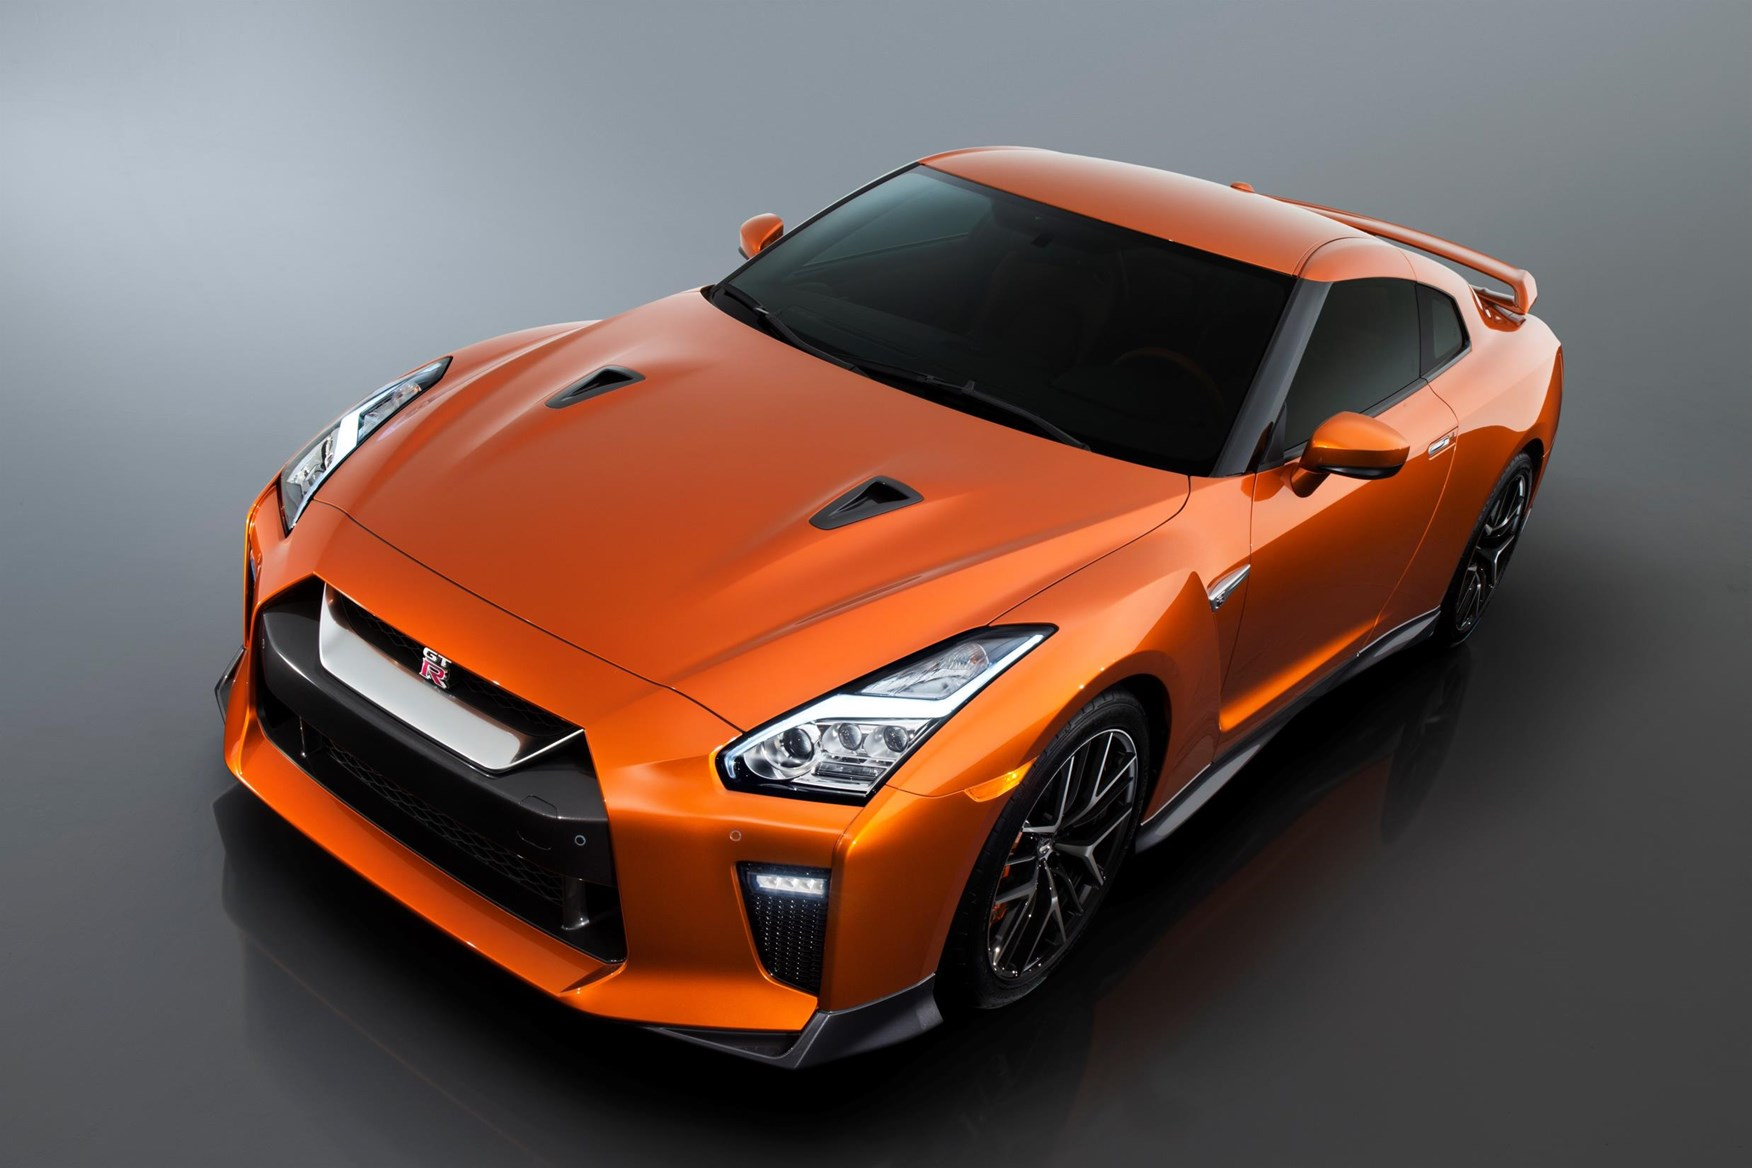 Euro-Spec Nissan GT-R Nismo to Debut in Geneva [49 New Photos]